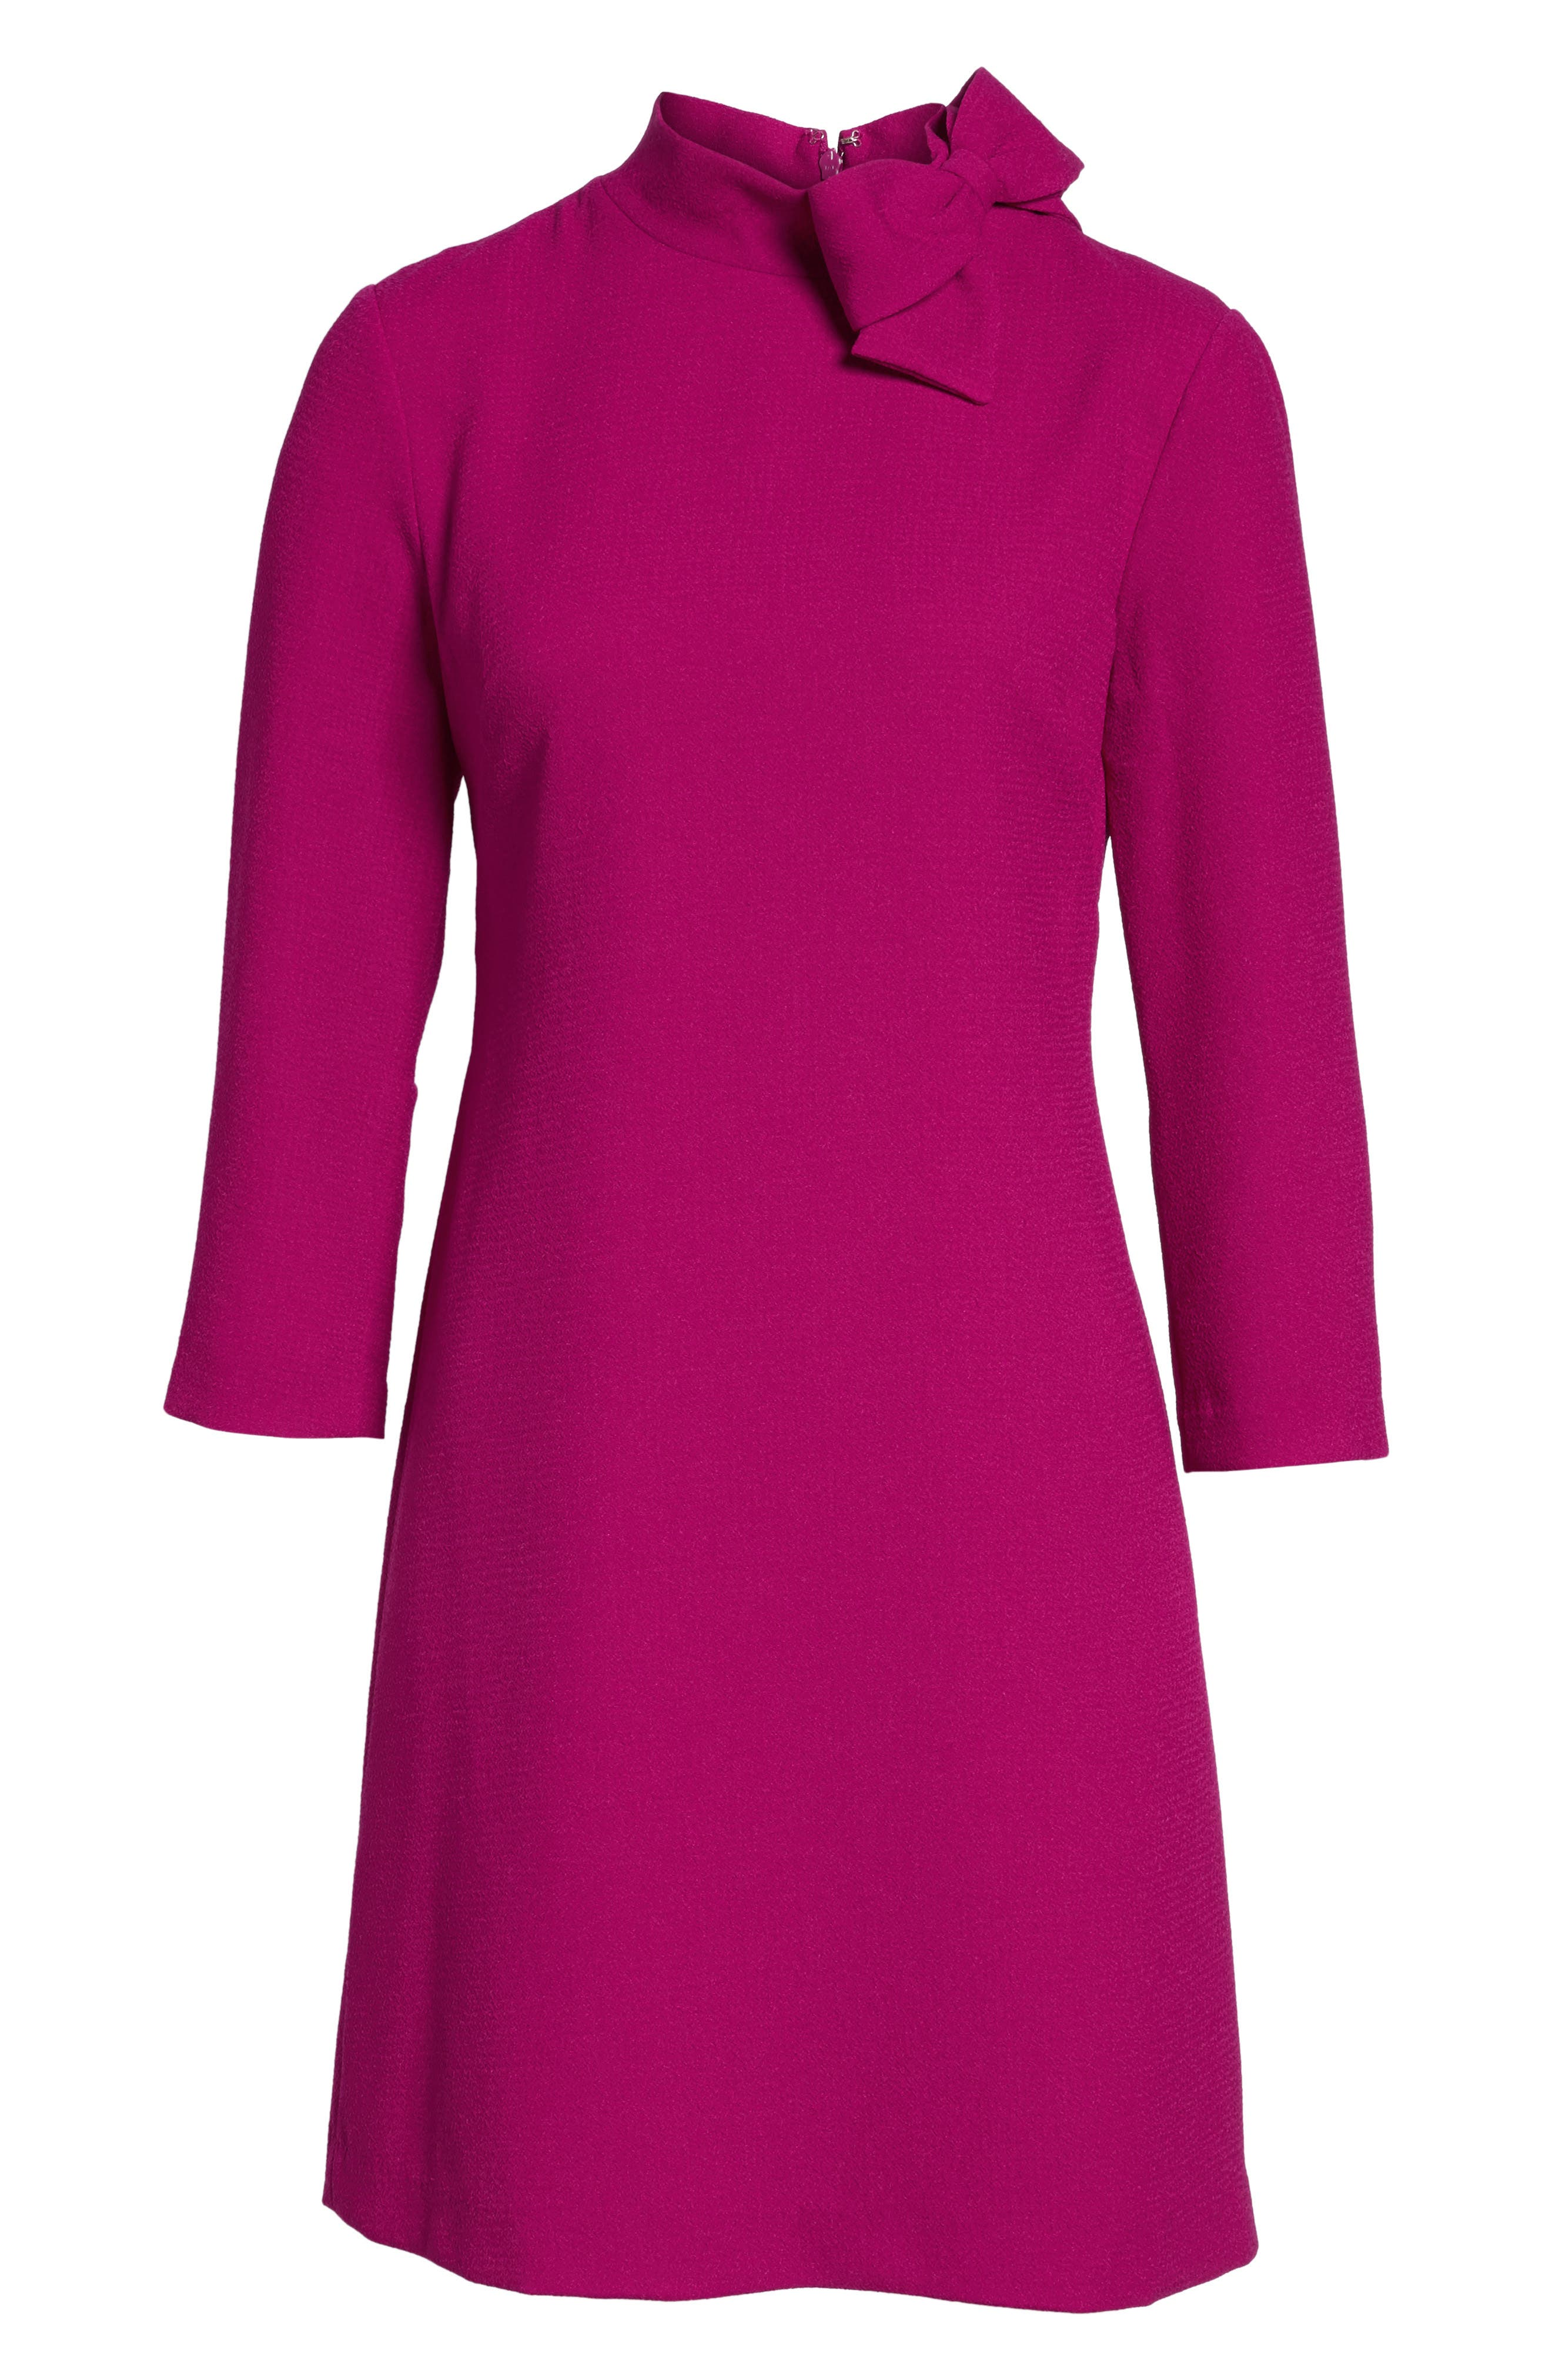 Bow Crepe A-Line Dress,                             Alternate thumbnail 8, color,                             Pink